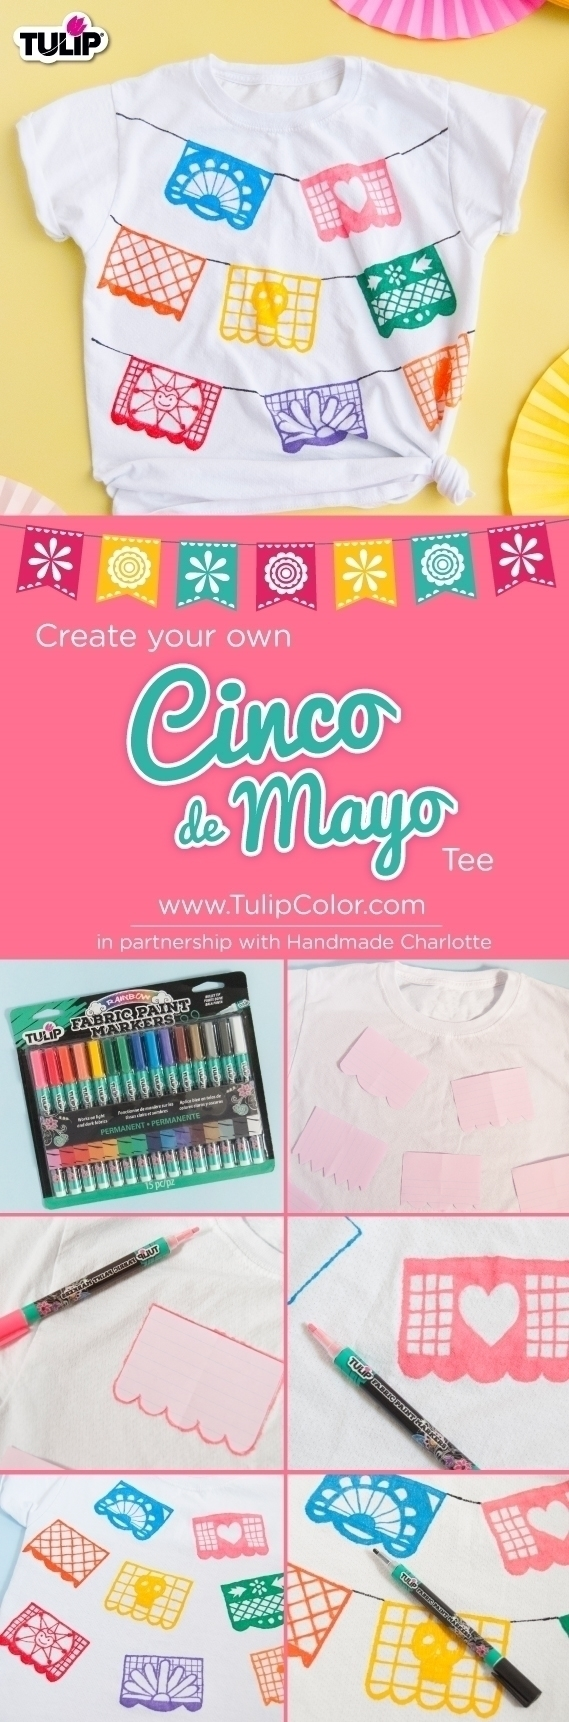 Tulip Fabric Markers Papel Picado T-shirt